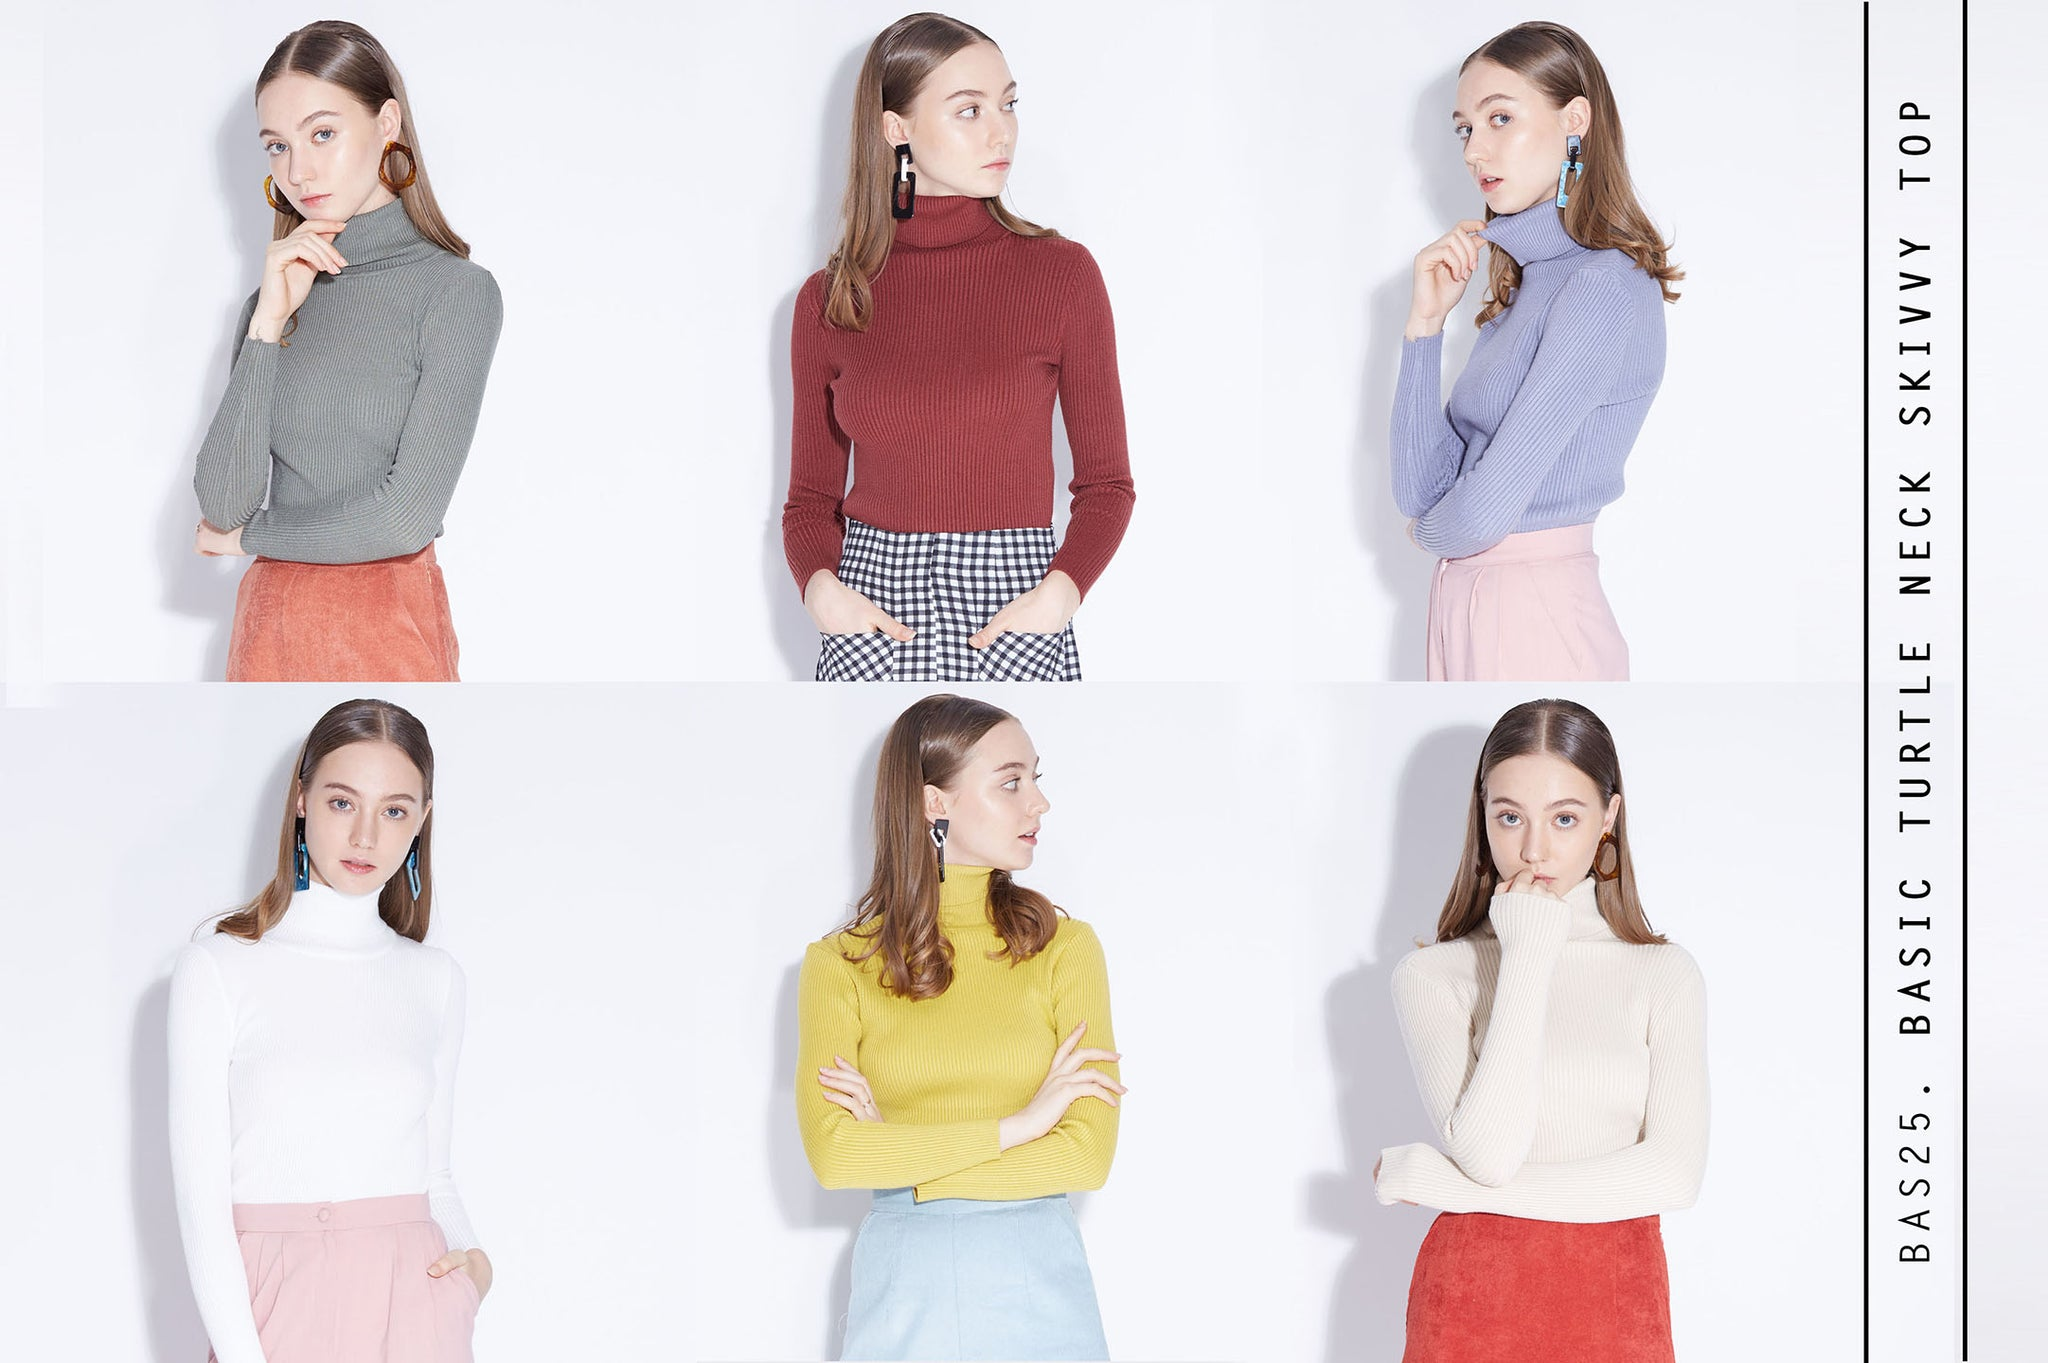 BASIC TURTLE NECK Skivvy Top